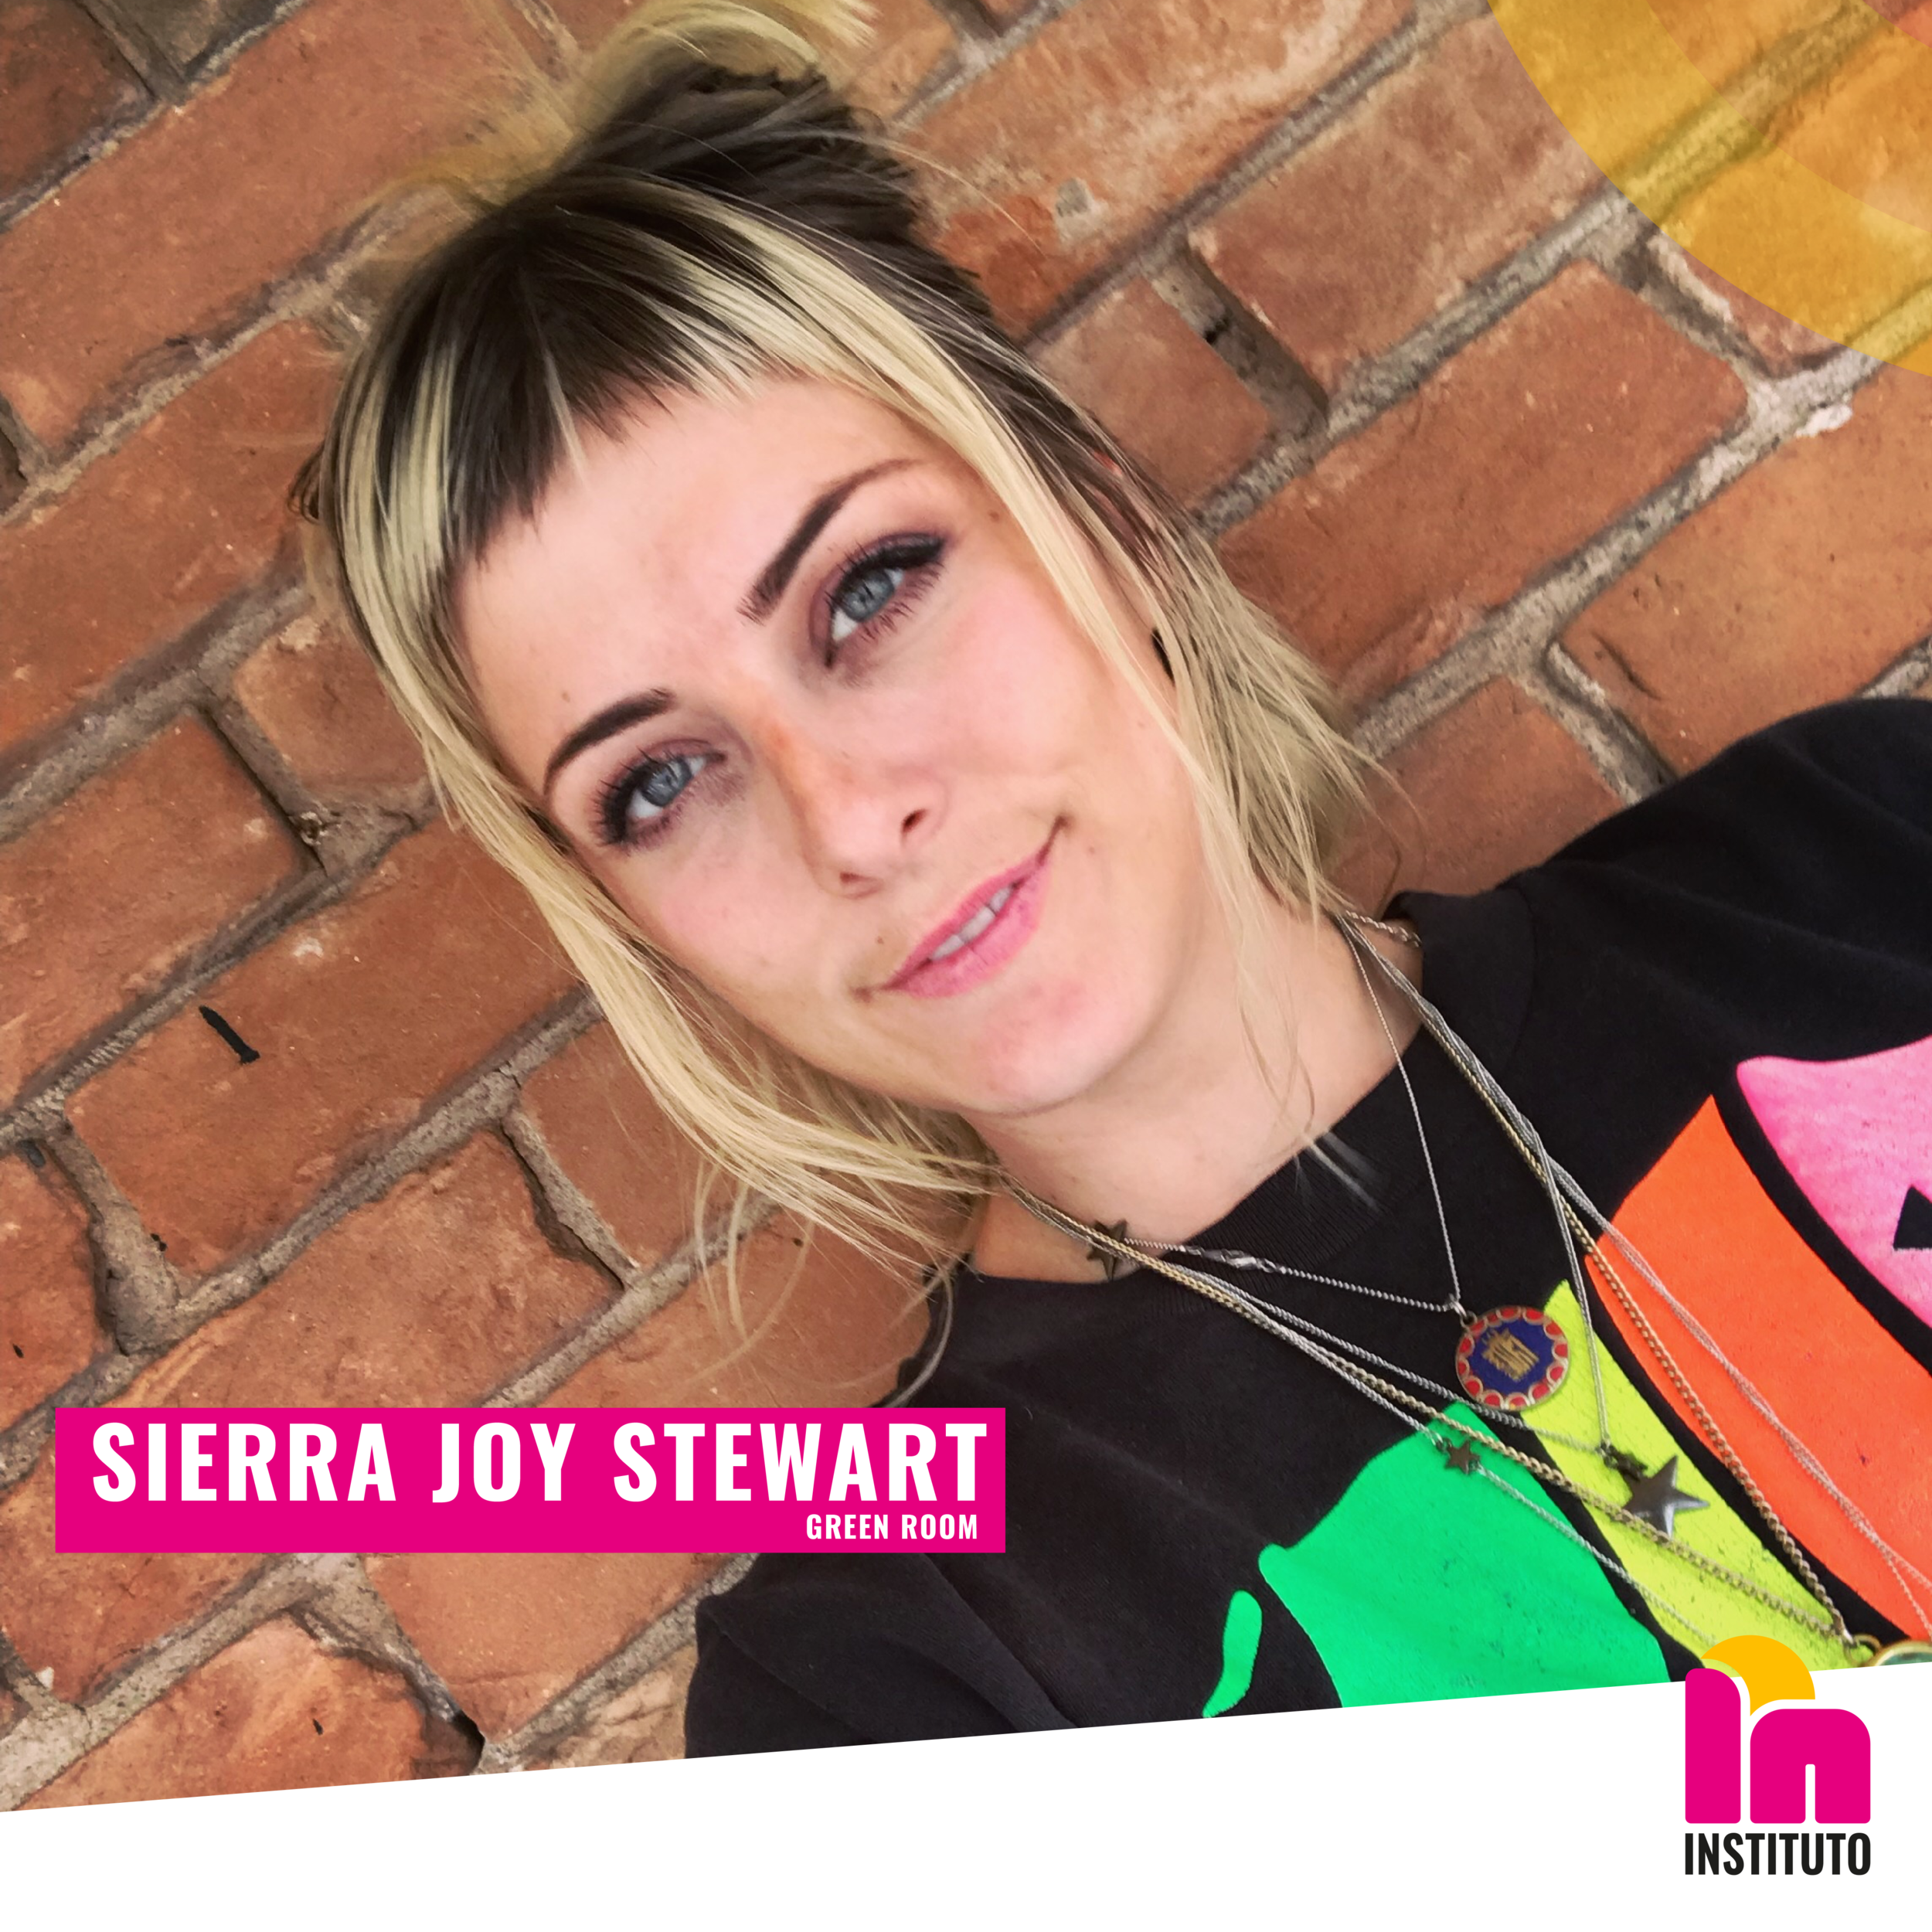 Have a sensory experience as you walk through Sierra Joy Stewart's art installation created specifically for Instituto's Launch.